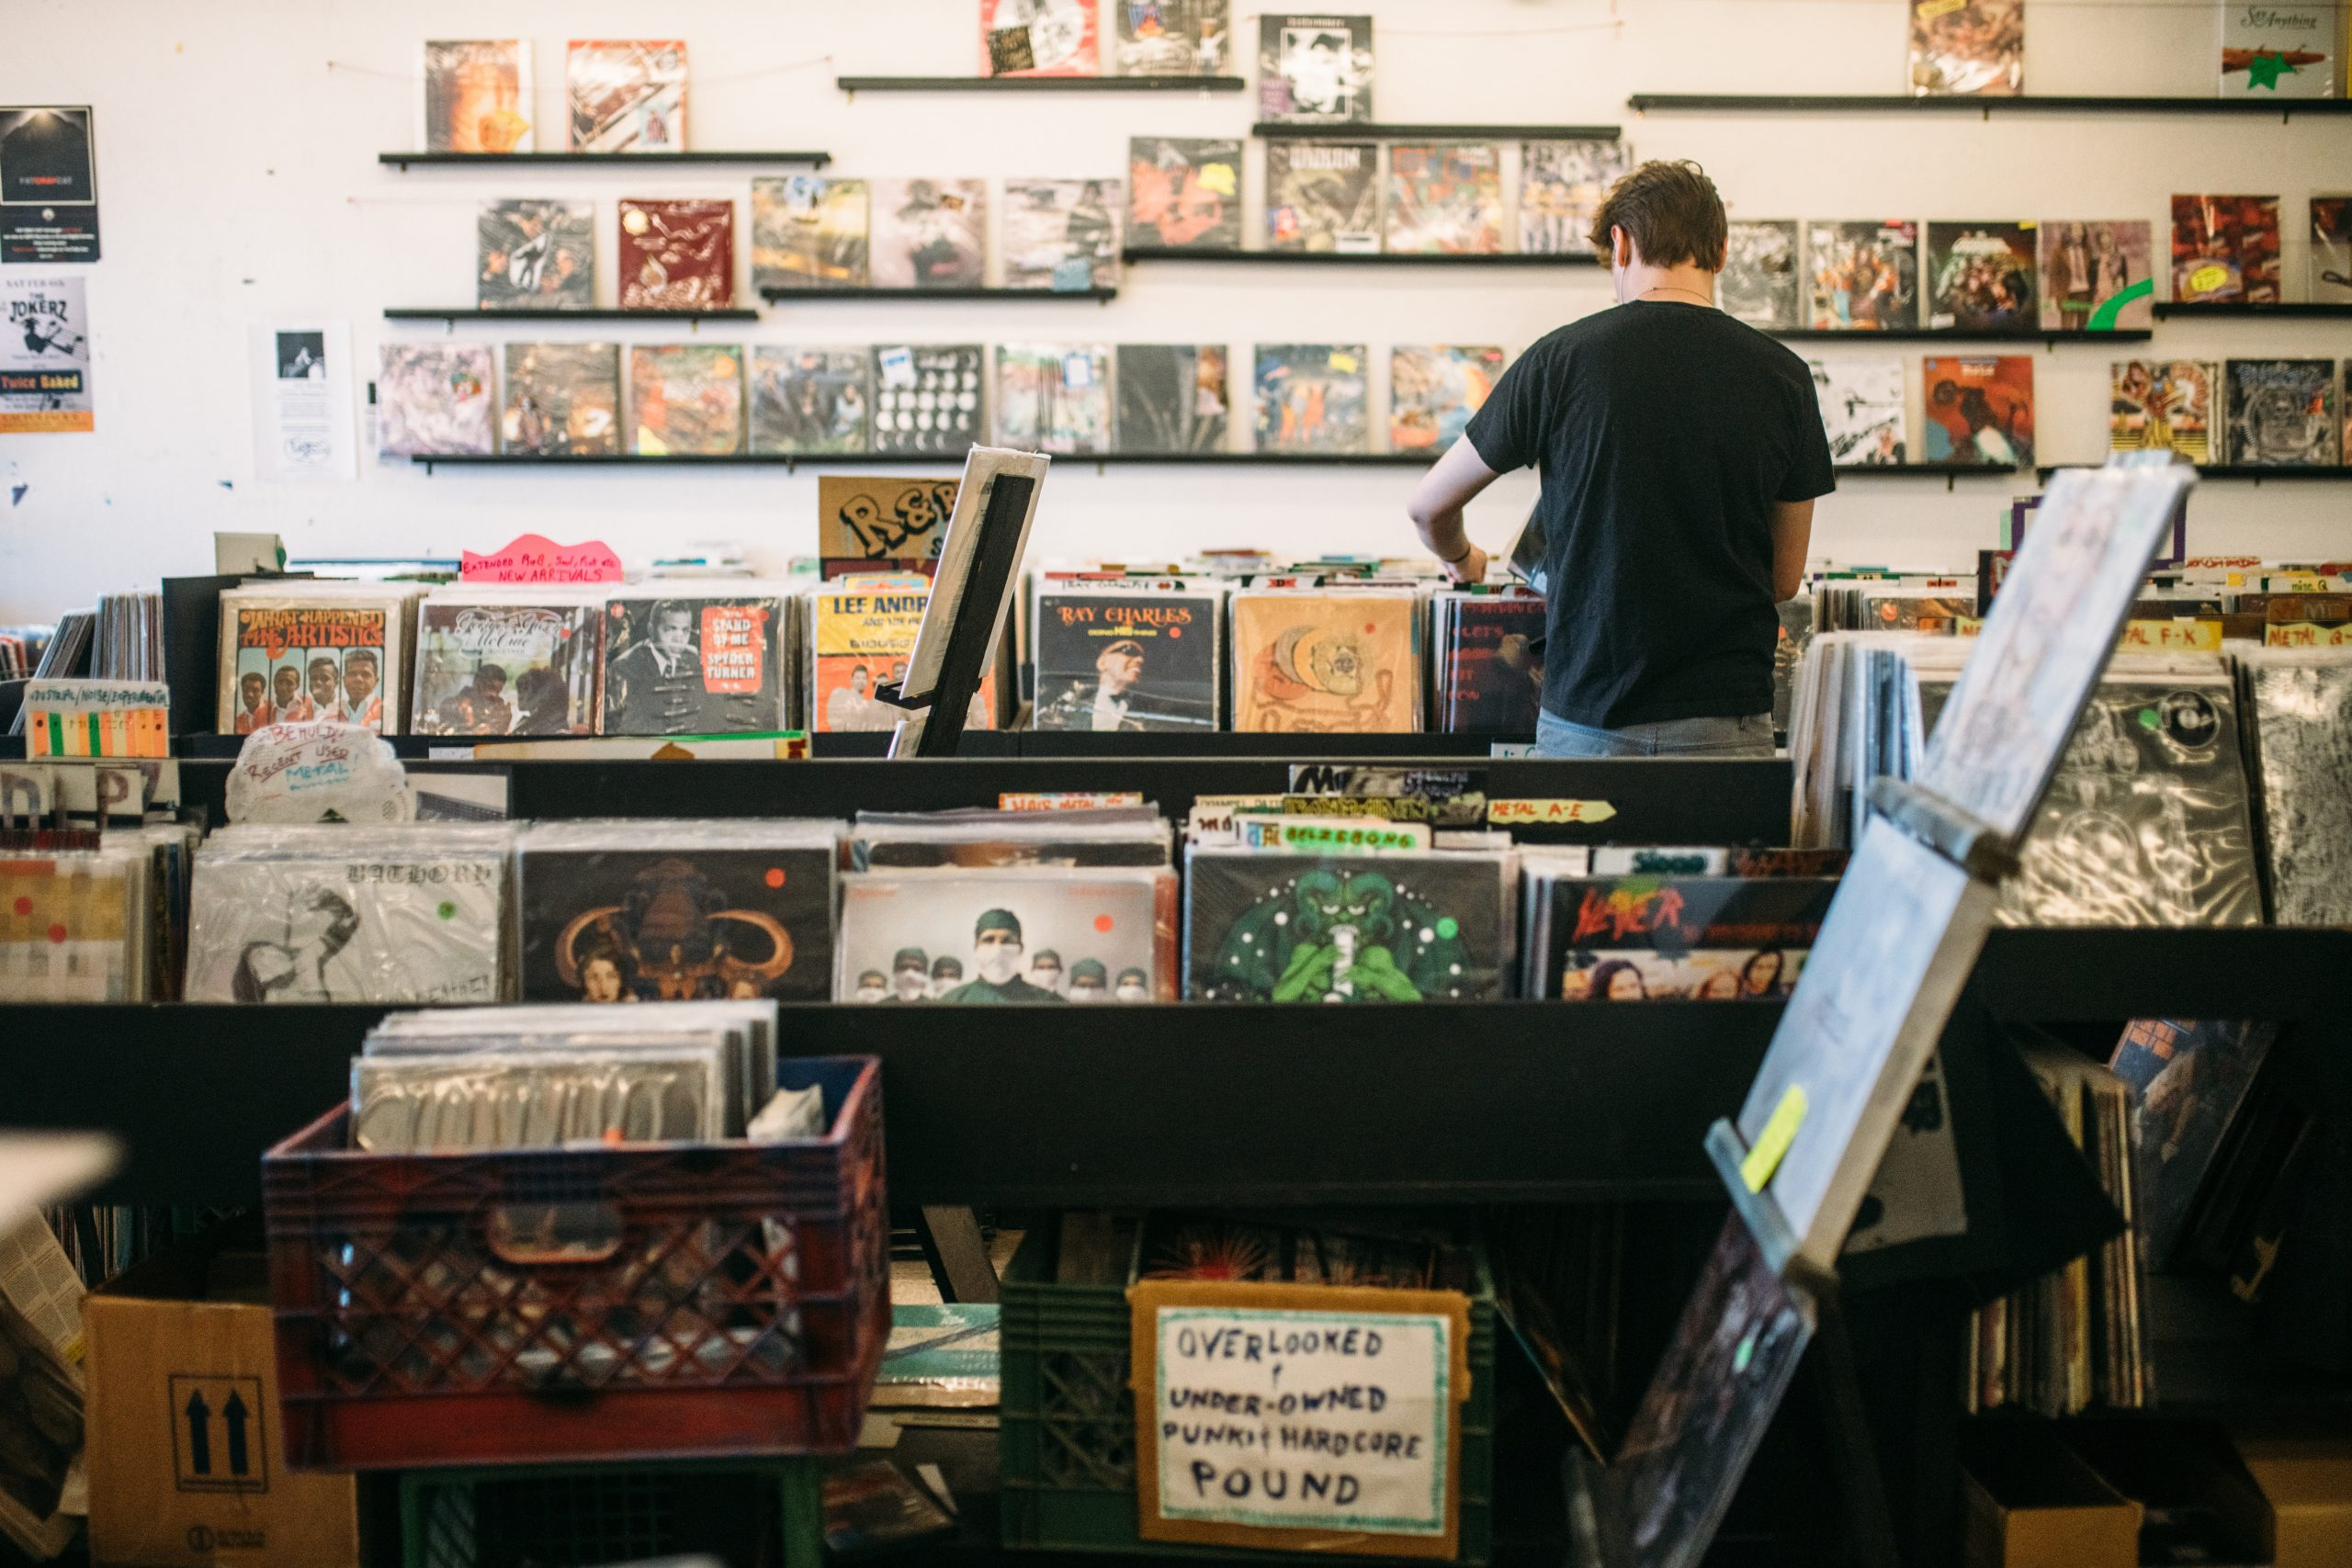 Guy shopping at a record store